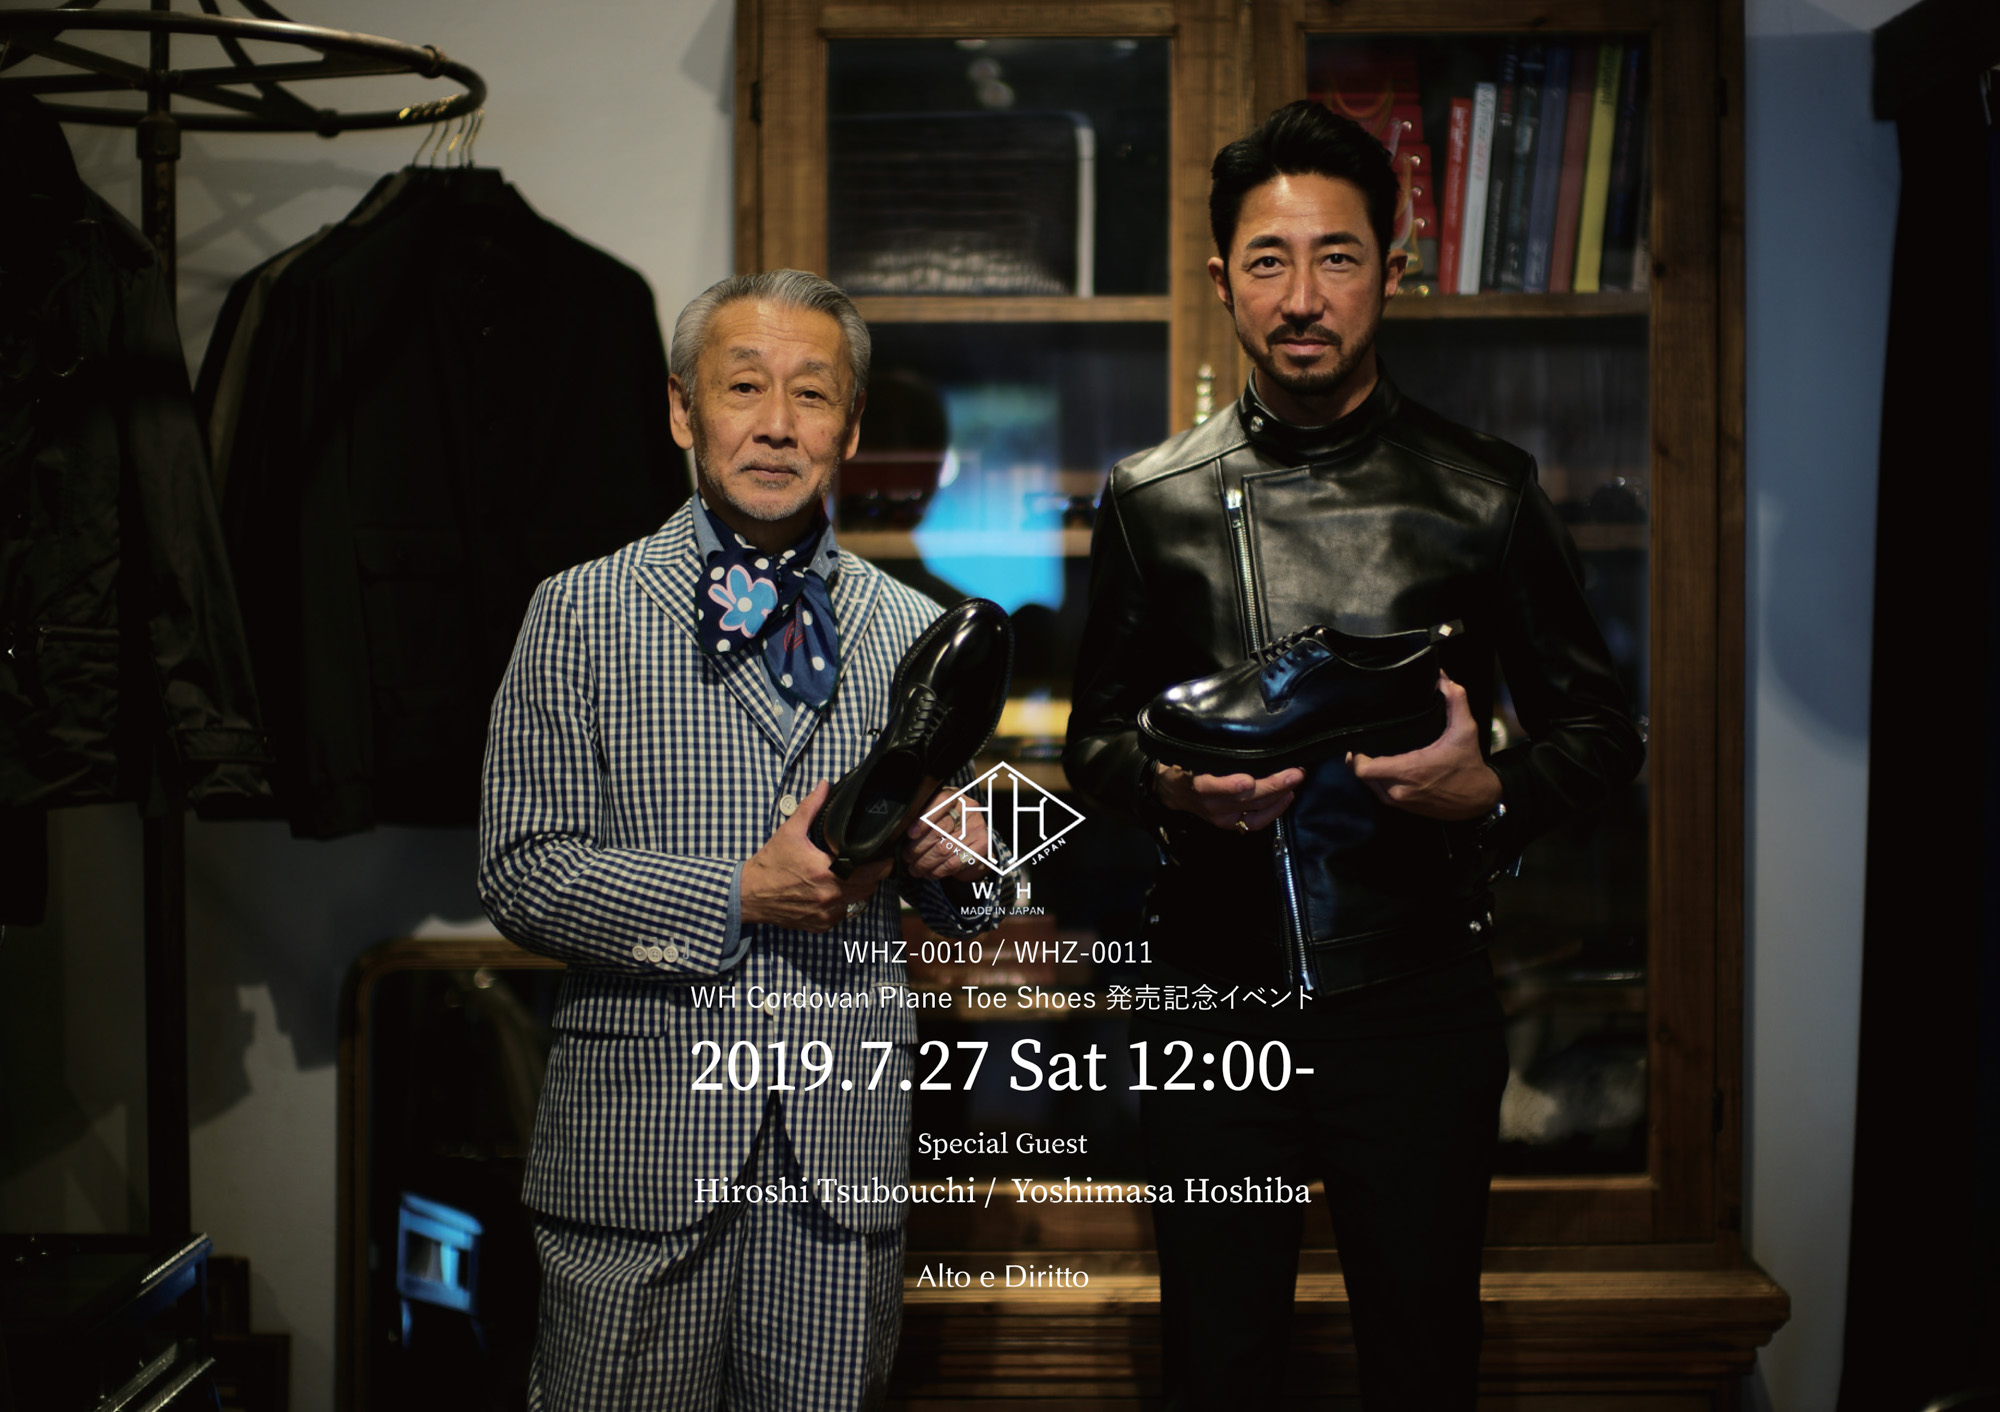 WH Cordovan Plane Toe Shoes WHZ-0010,WHZ-0011 発売記念イベント 2019.7.27 Sat 12:00~ // Special Guest 坪内浩さん,干場義雅さん ダブルエイチ コードバン altoediritto アルトエデリット